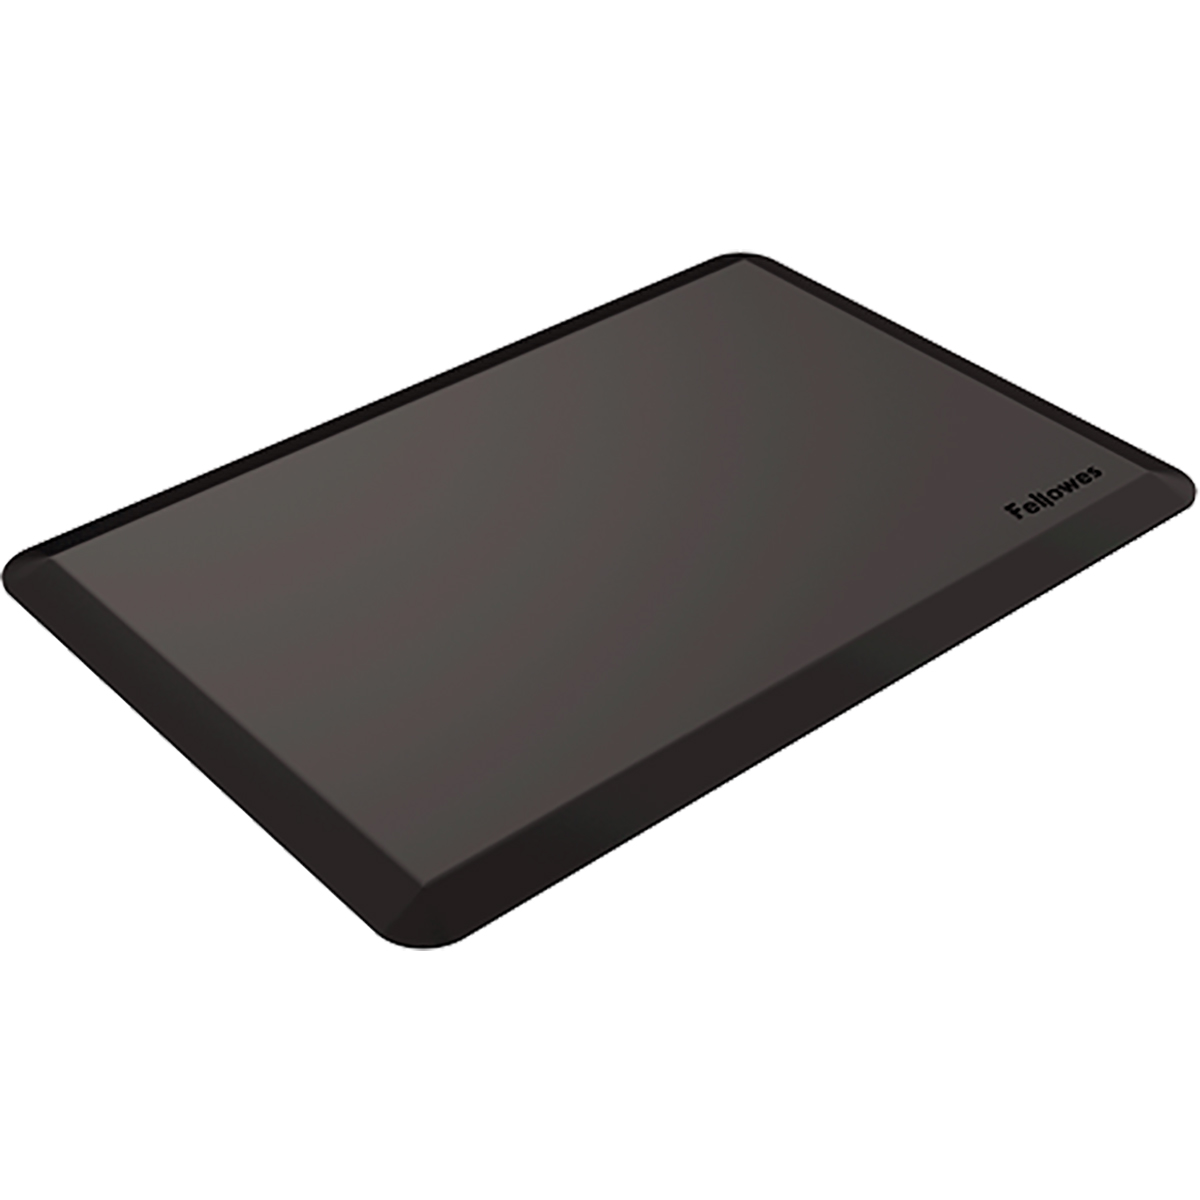 Fellowes 8707001 Everyday Sit Stand mat